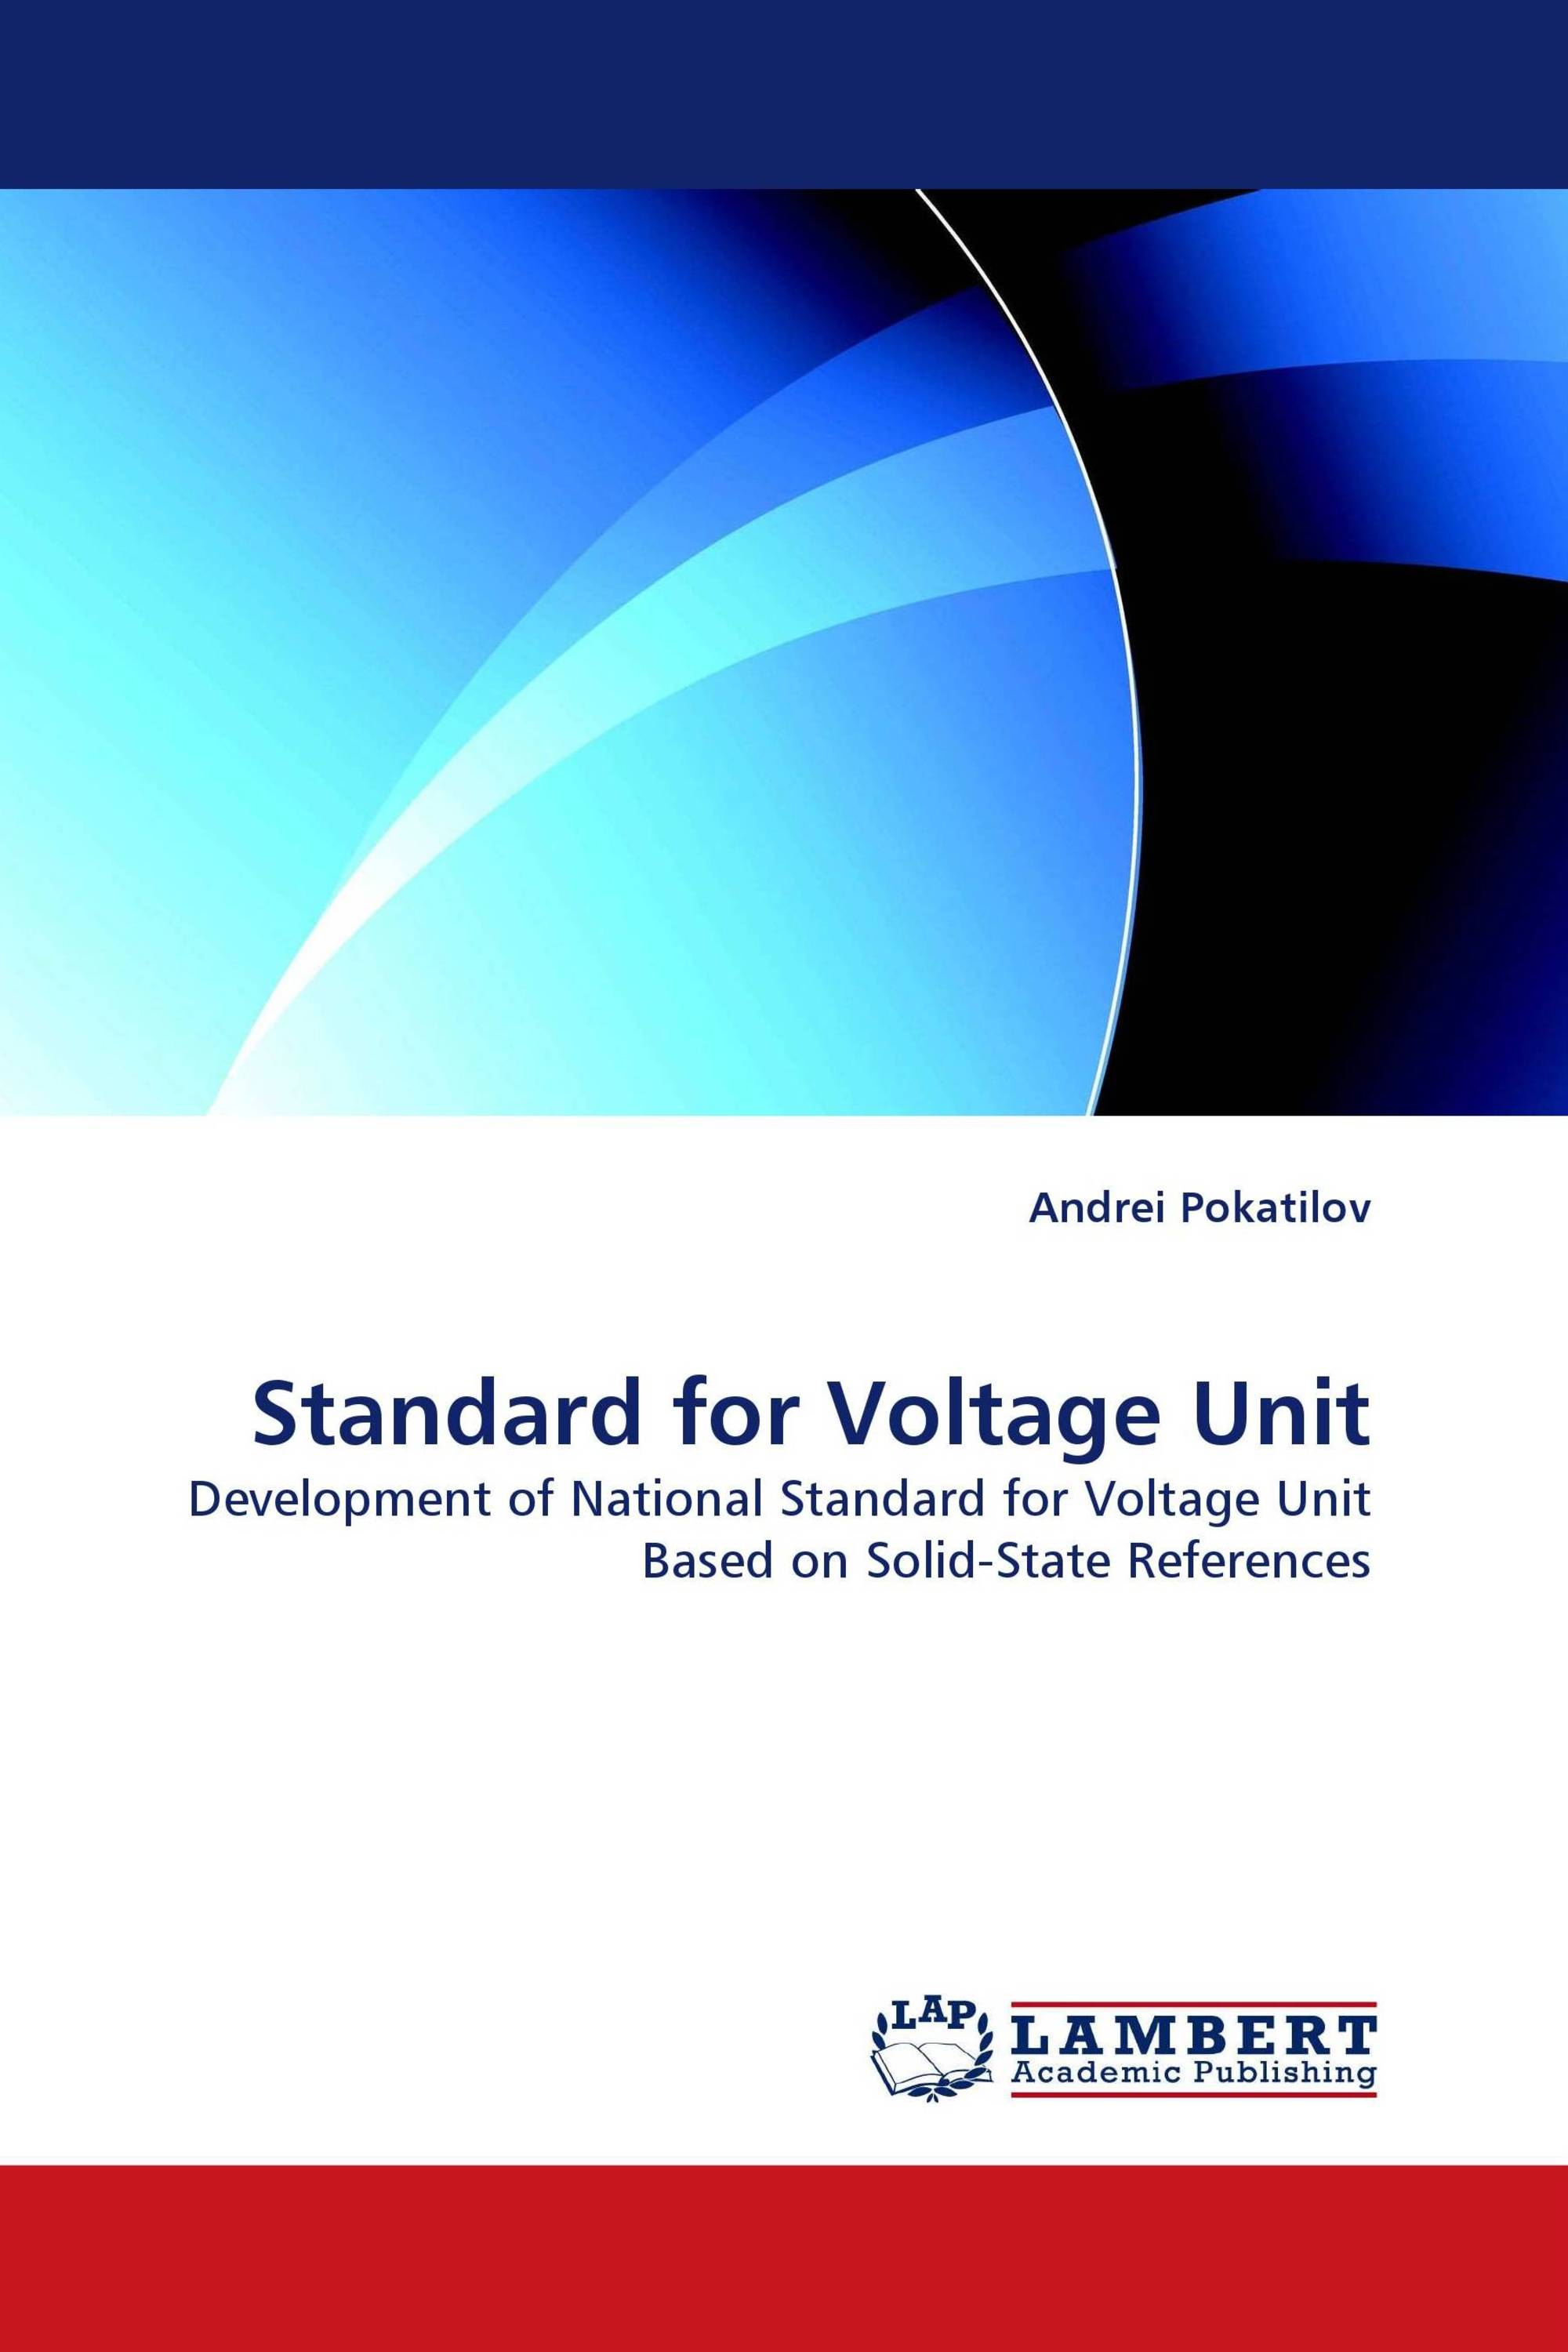 Standard for Voltage Unit